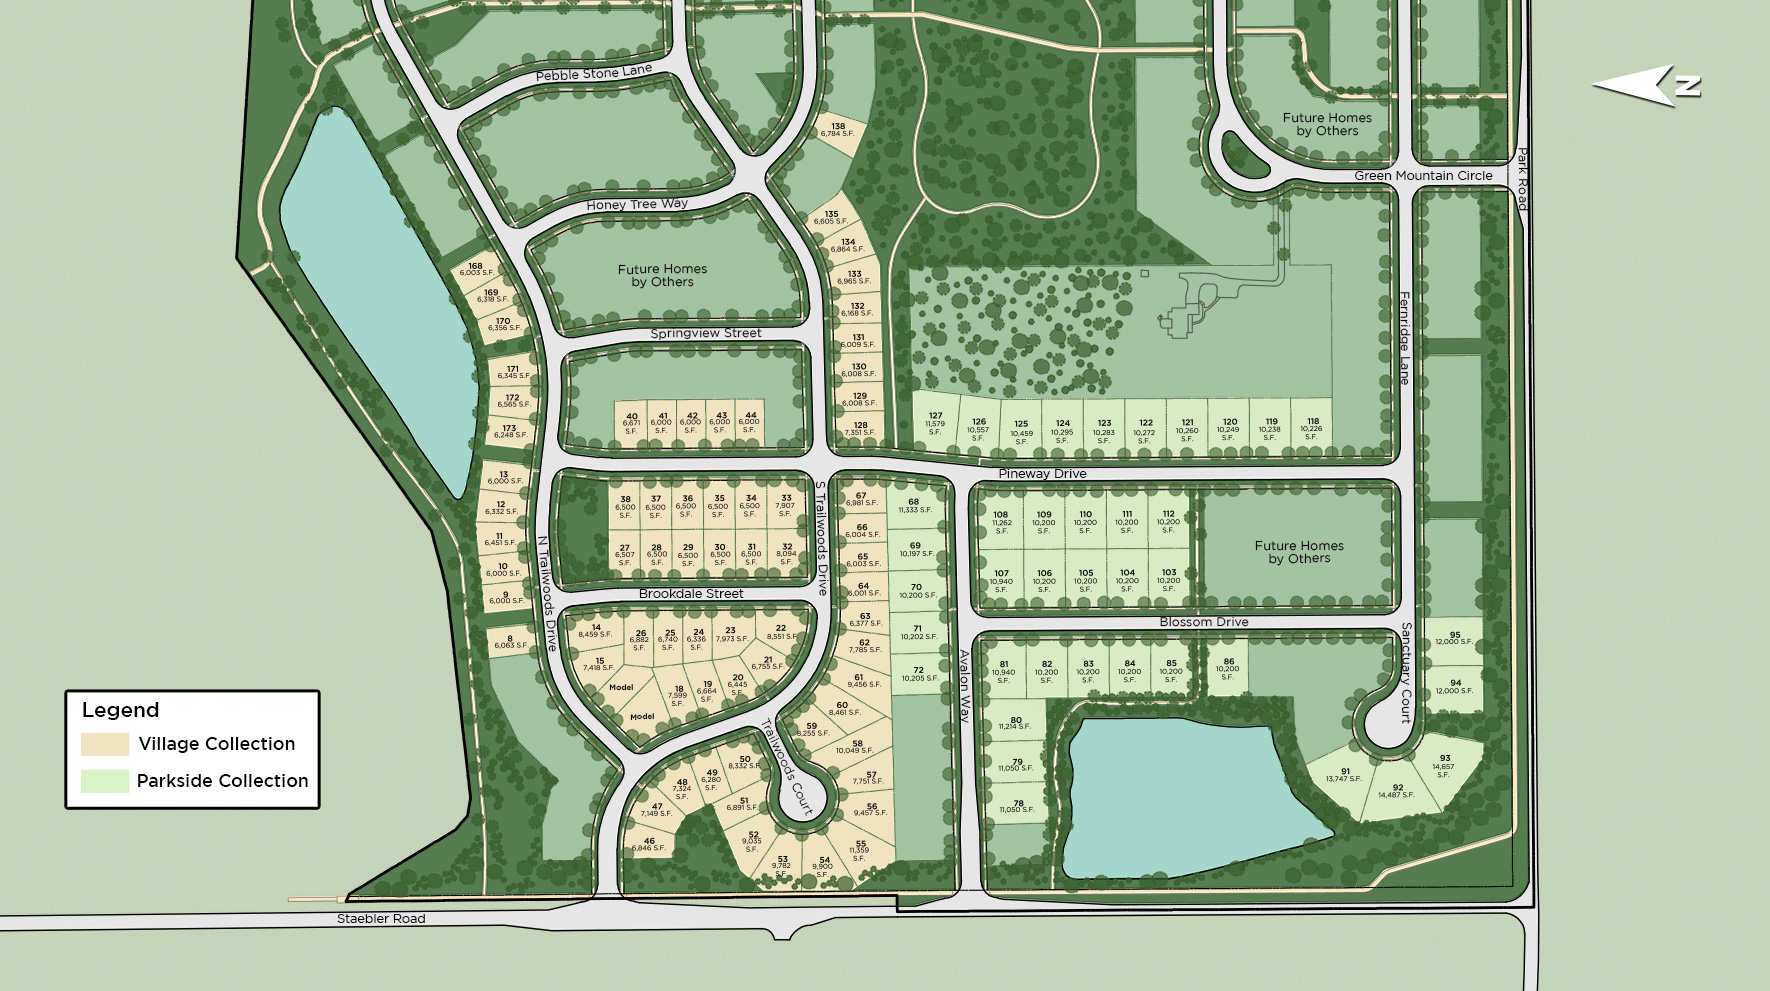 Trailwoods of Ann Arbor - The Village Collection Site Plan